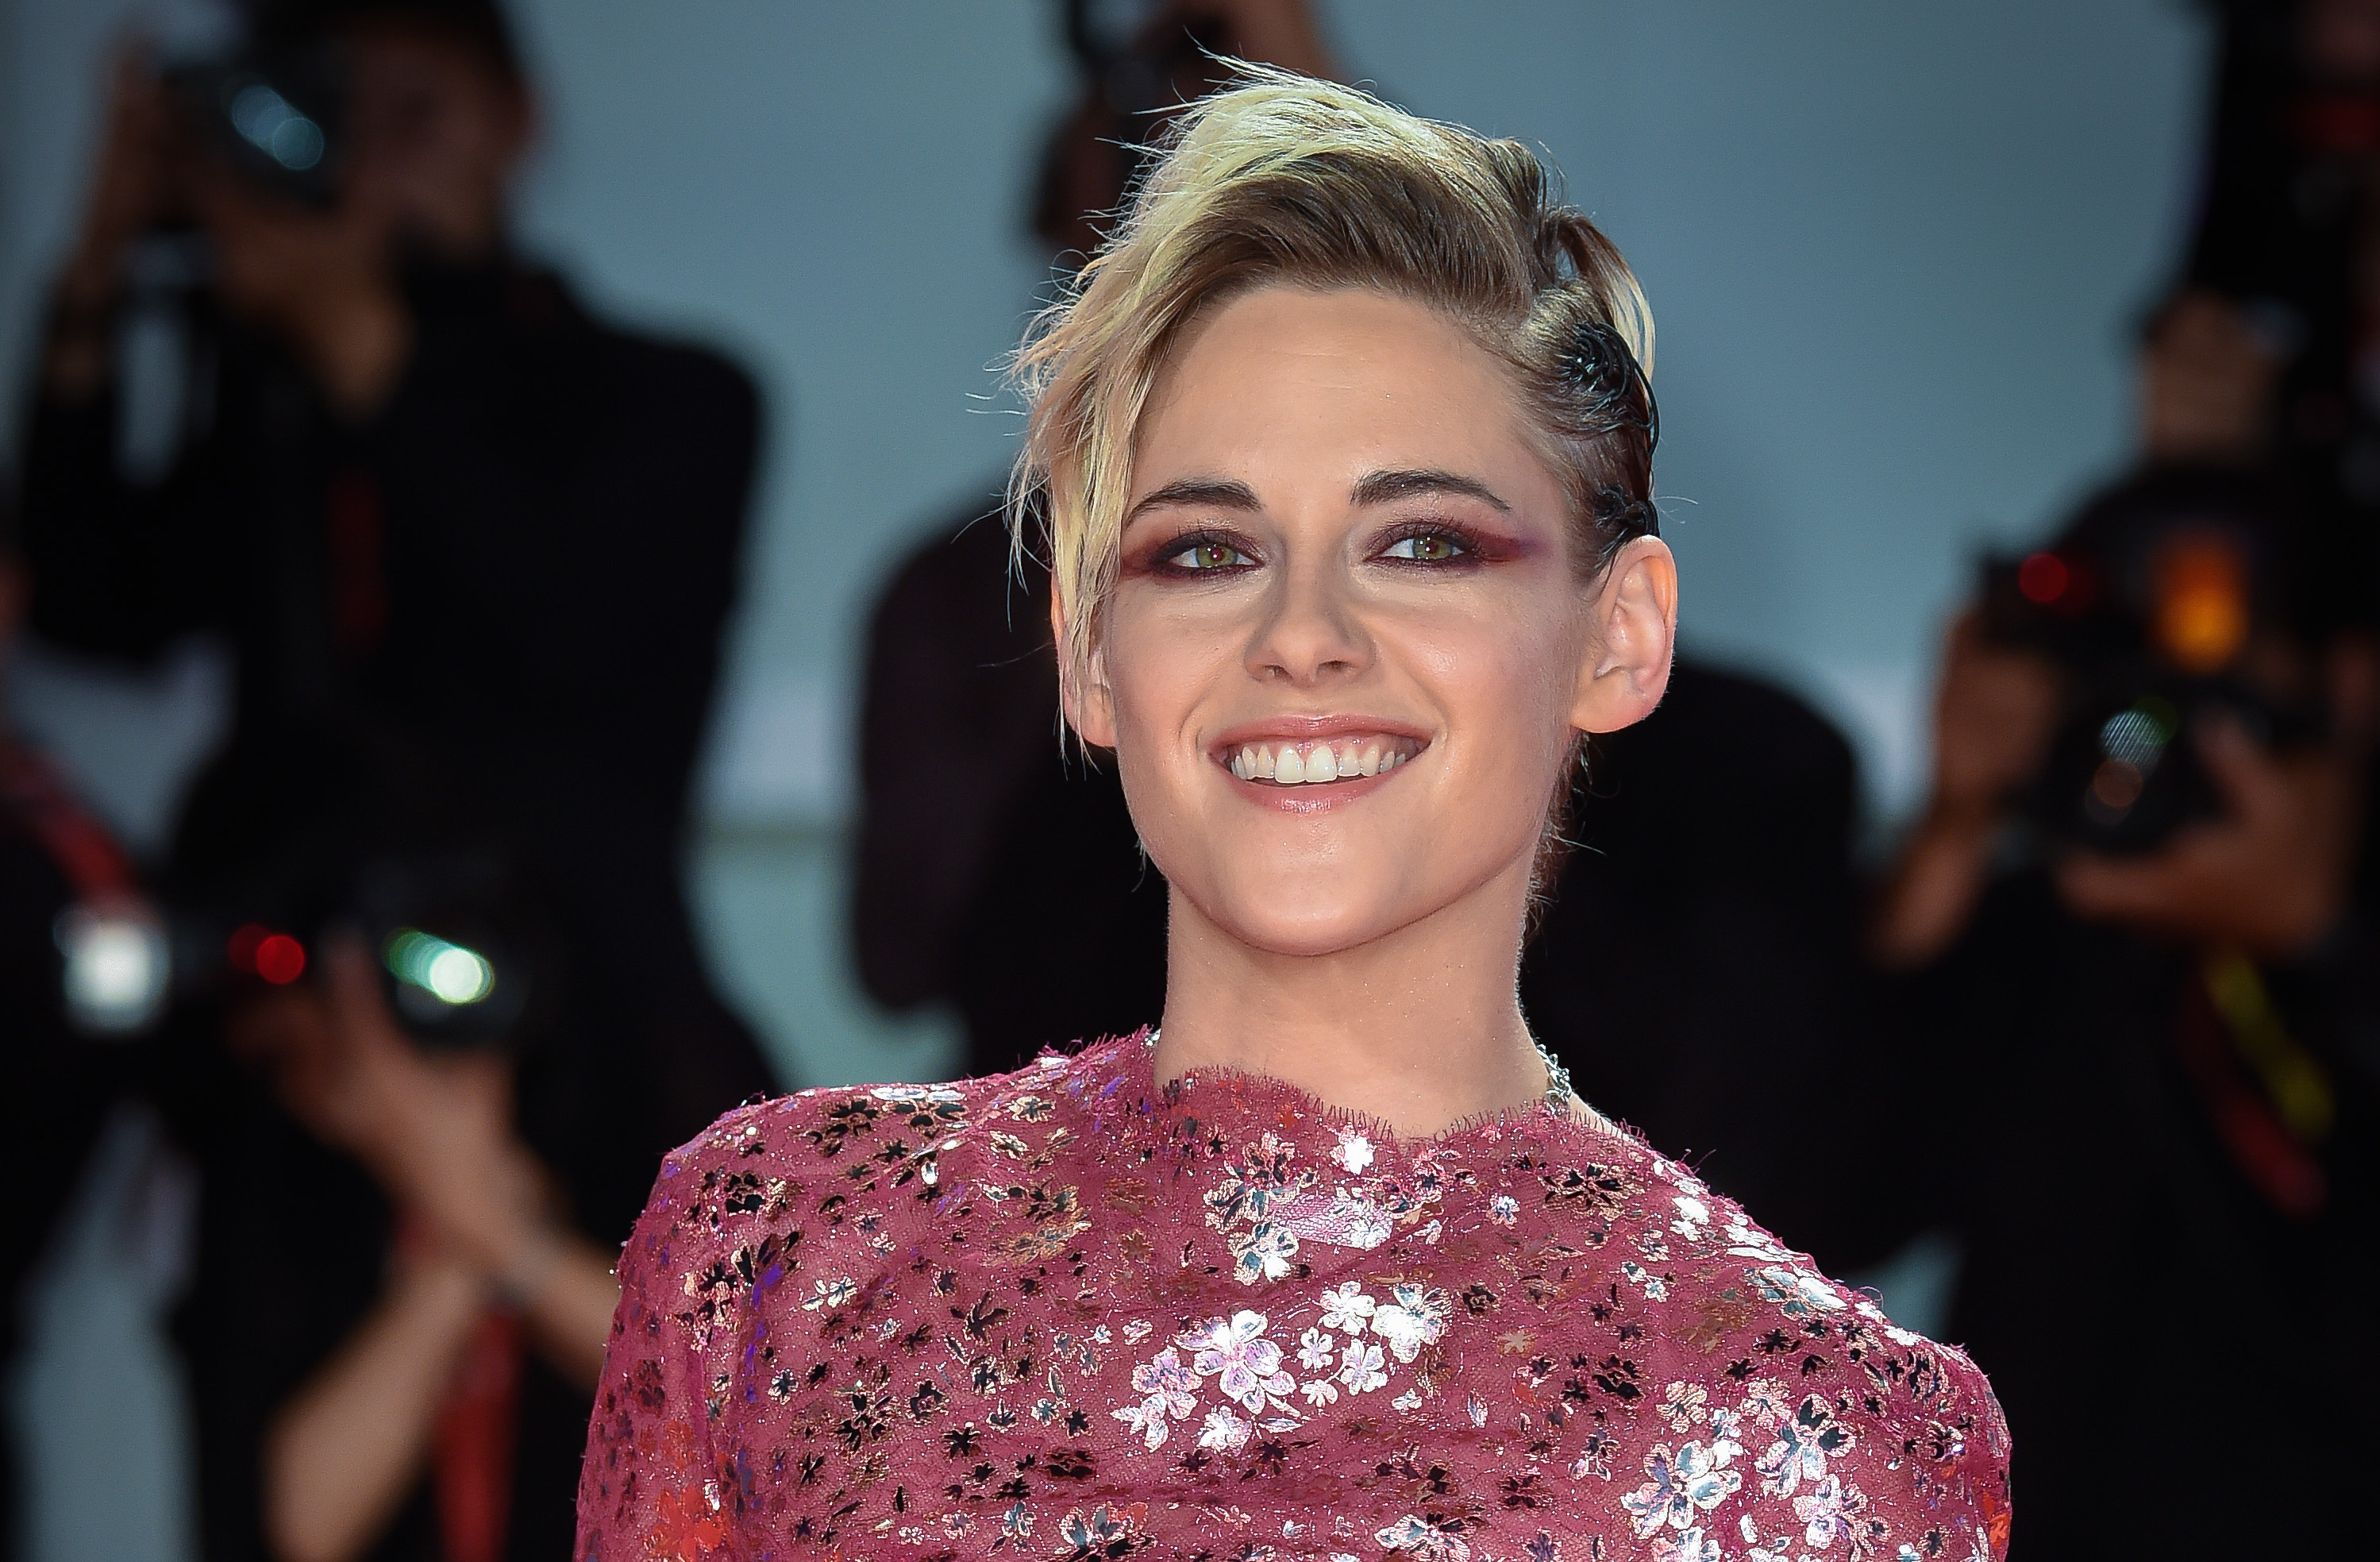 Kristen Stewart opened up about why she kept her relationship with Robert Pattinson so private